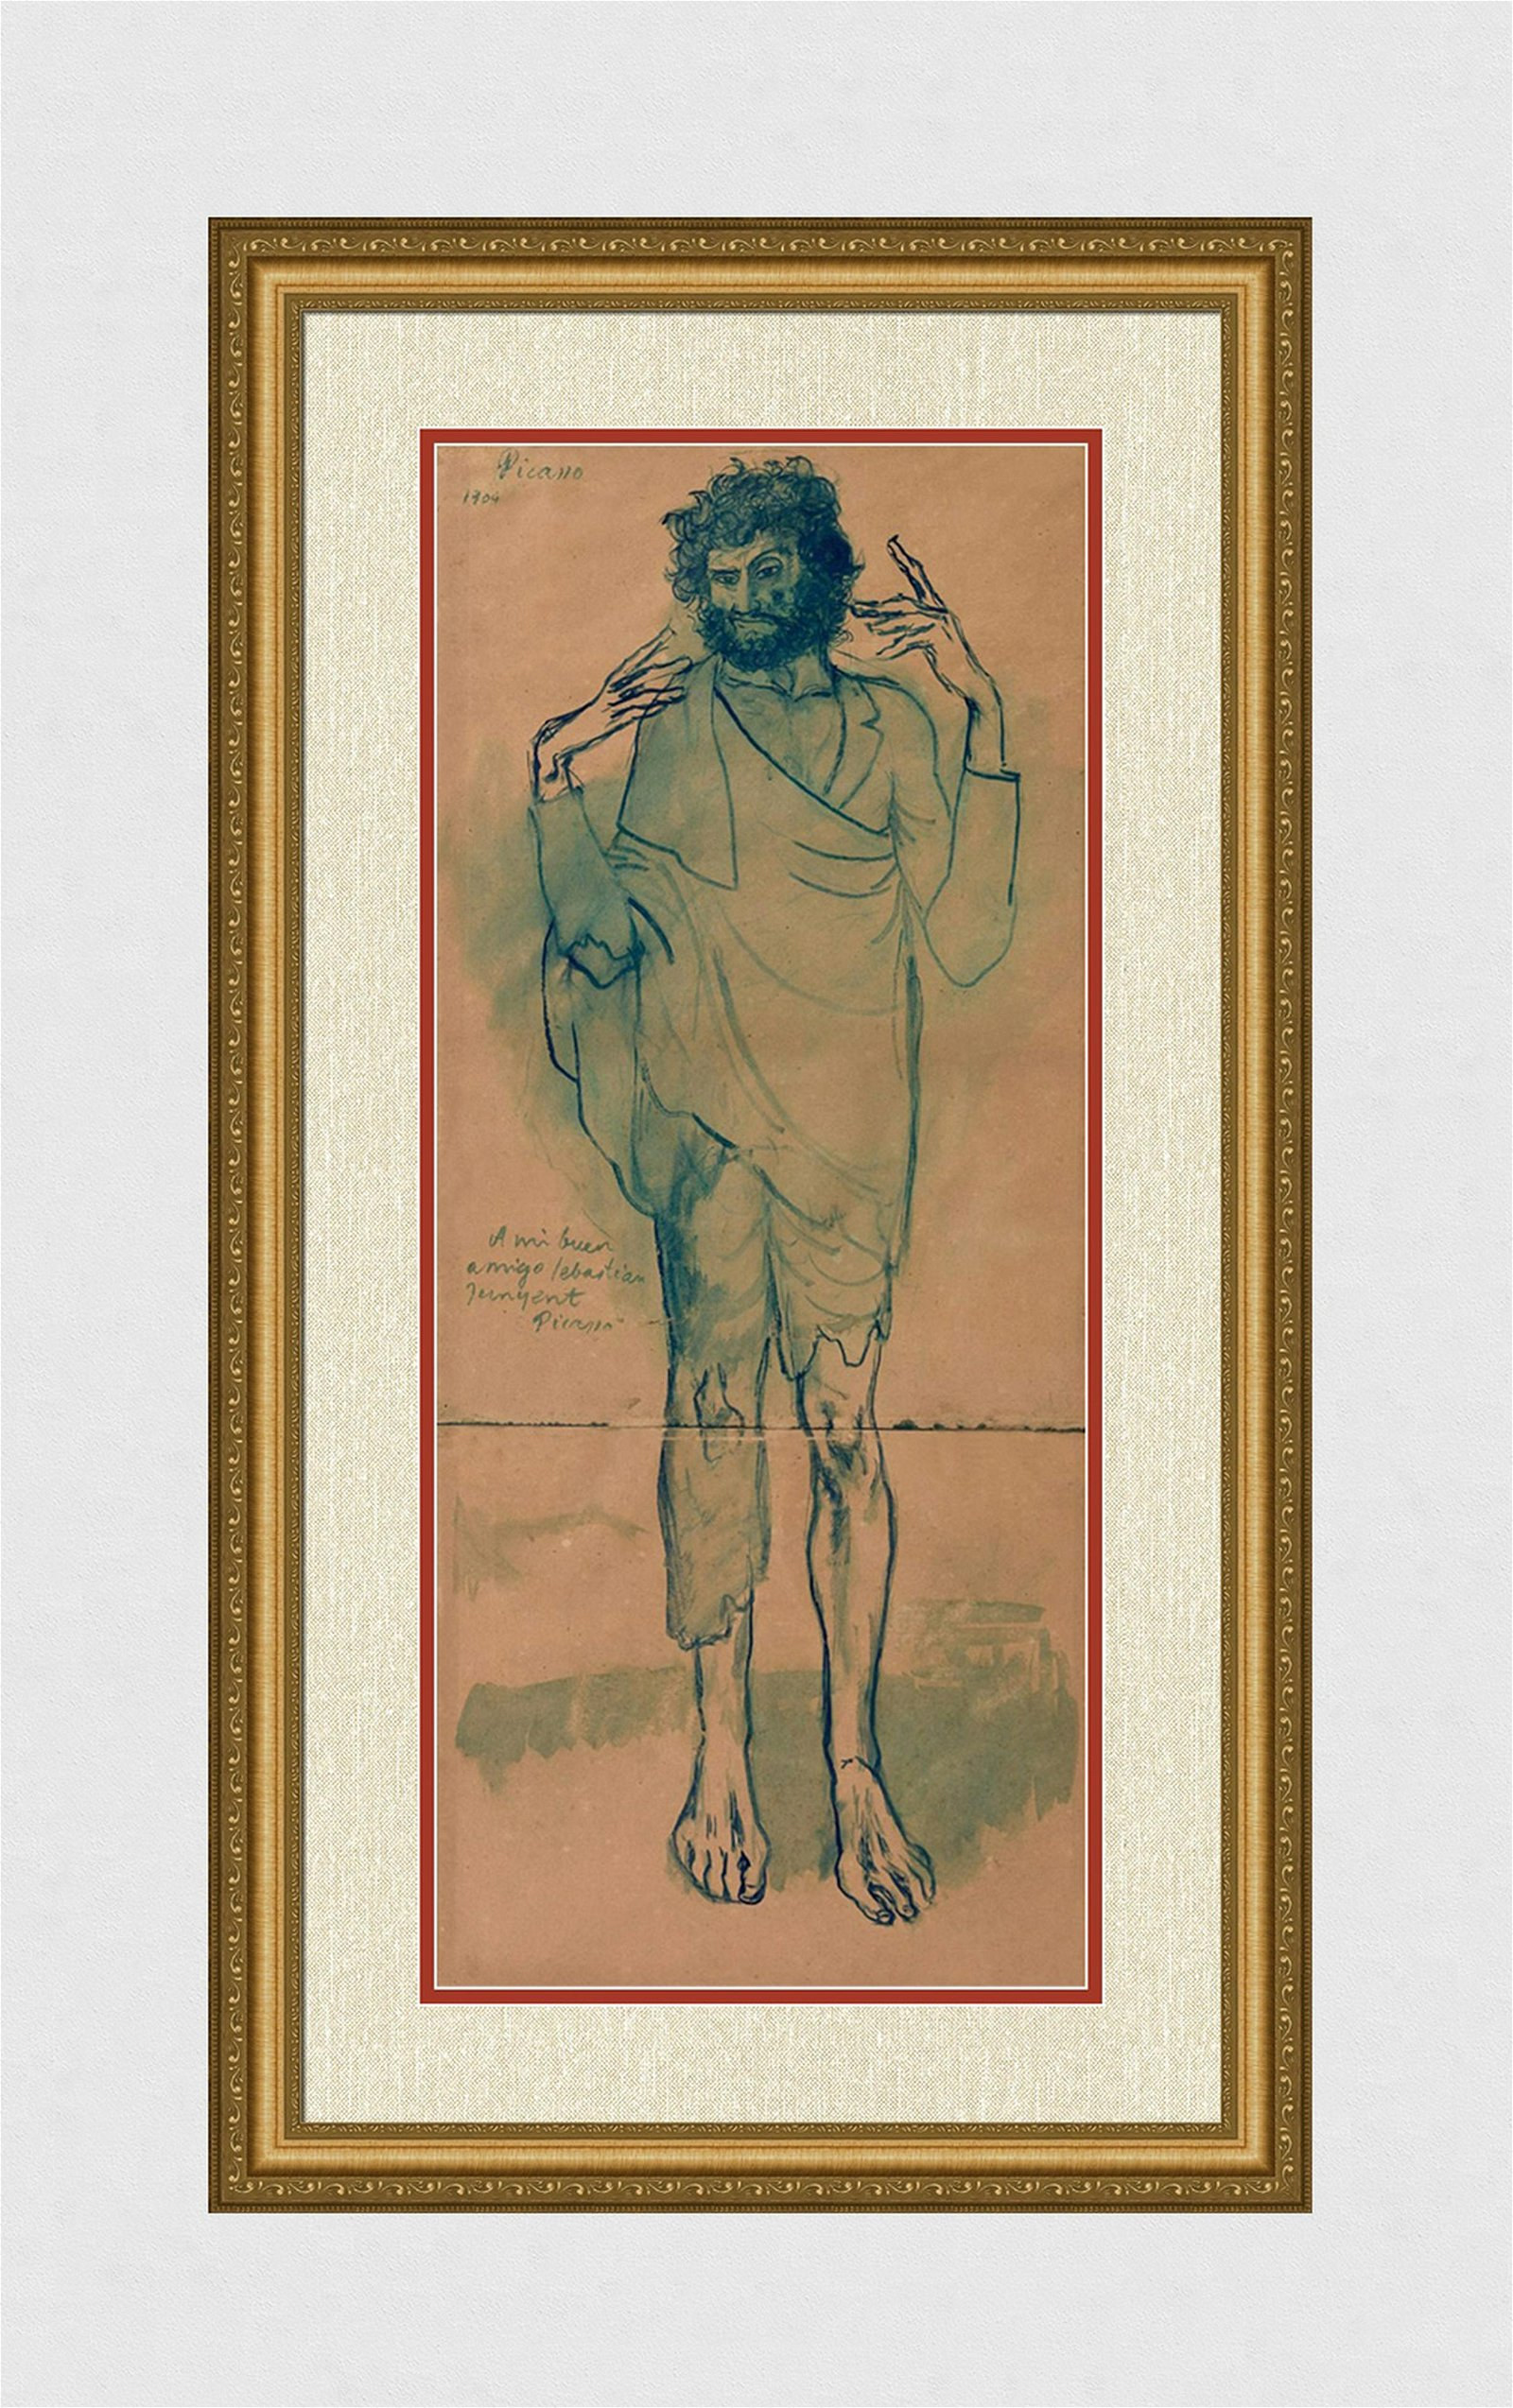 1963 Pablo PICASSO The Fool Limited Barcelone